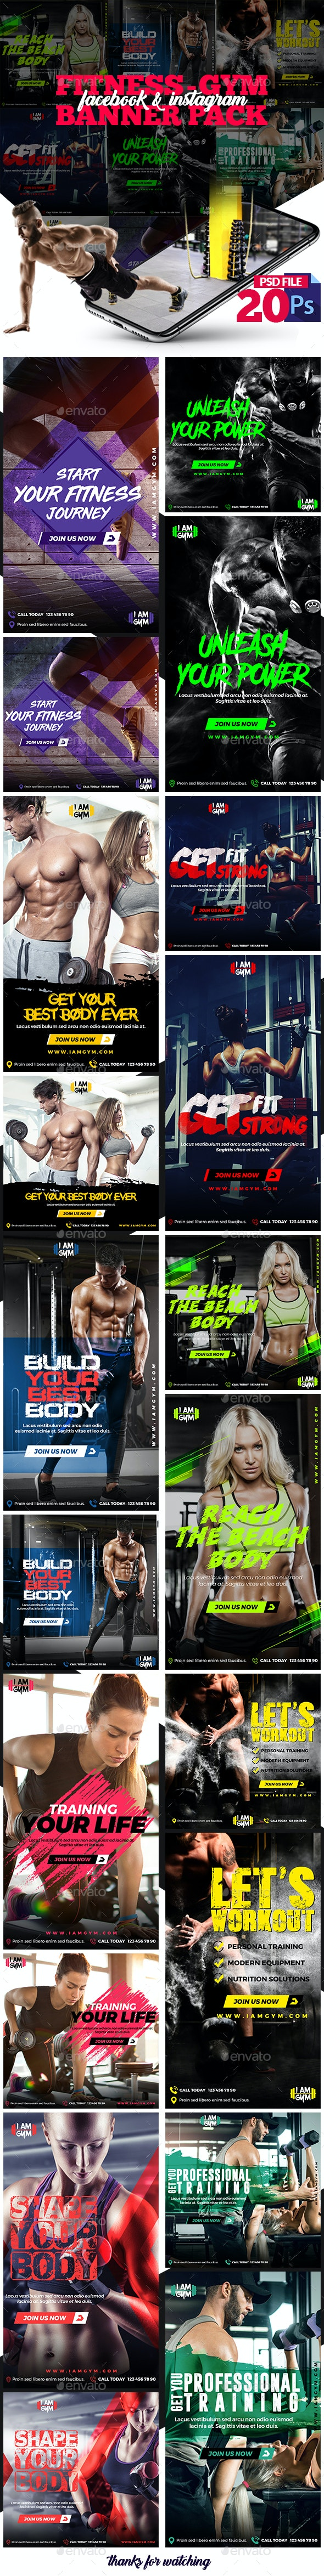 Fitness-GYM Instagram Post and Stories - Social Media Web Elements